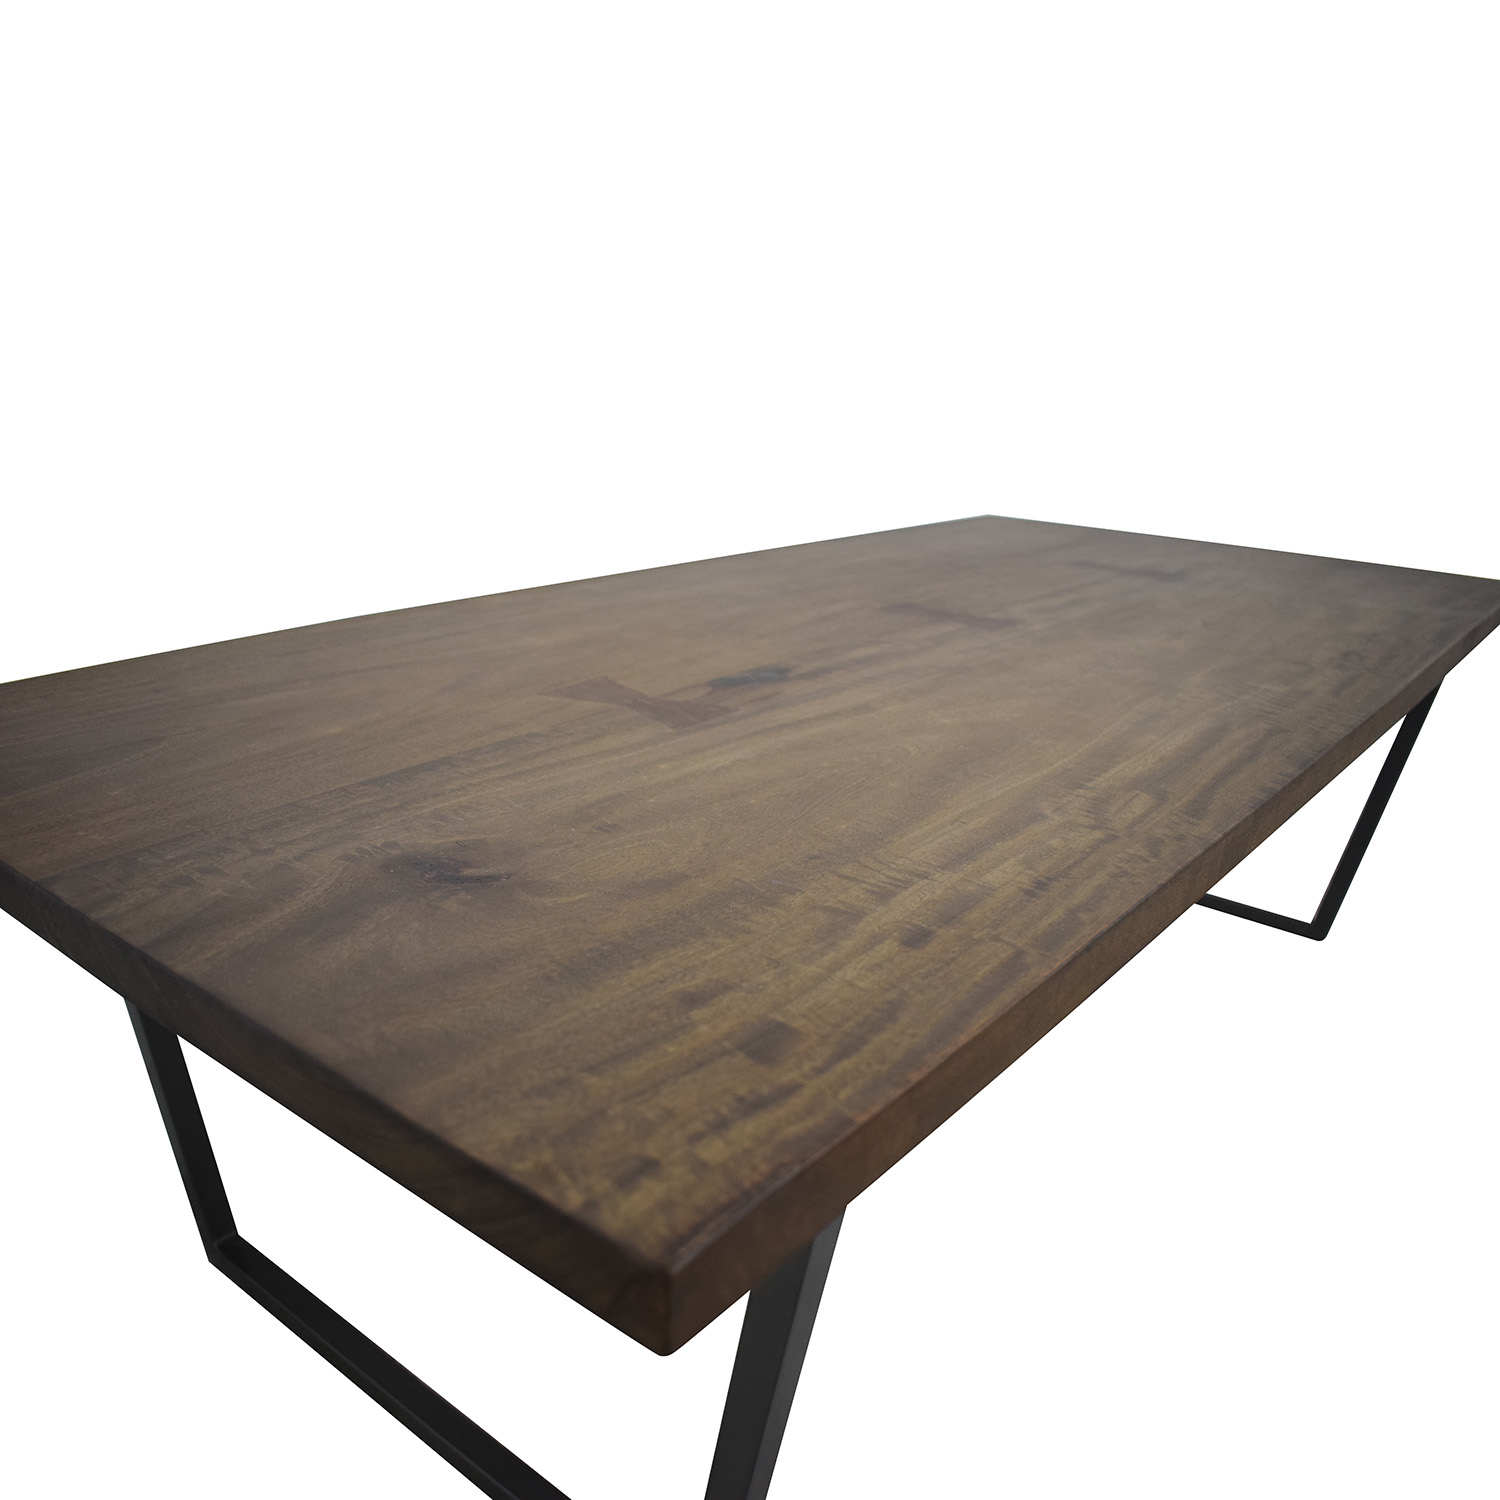 Super 89 Off Cb2 Cb2 Rustic Wood And Metal Coffee Table Tables Machost Co Dining Chair Design Ideas Machostcouk